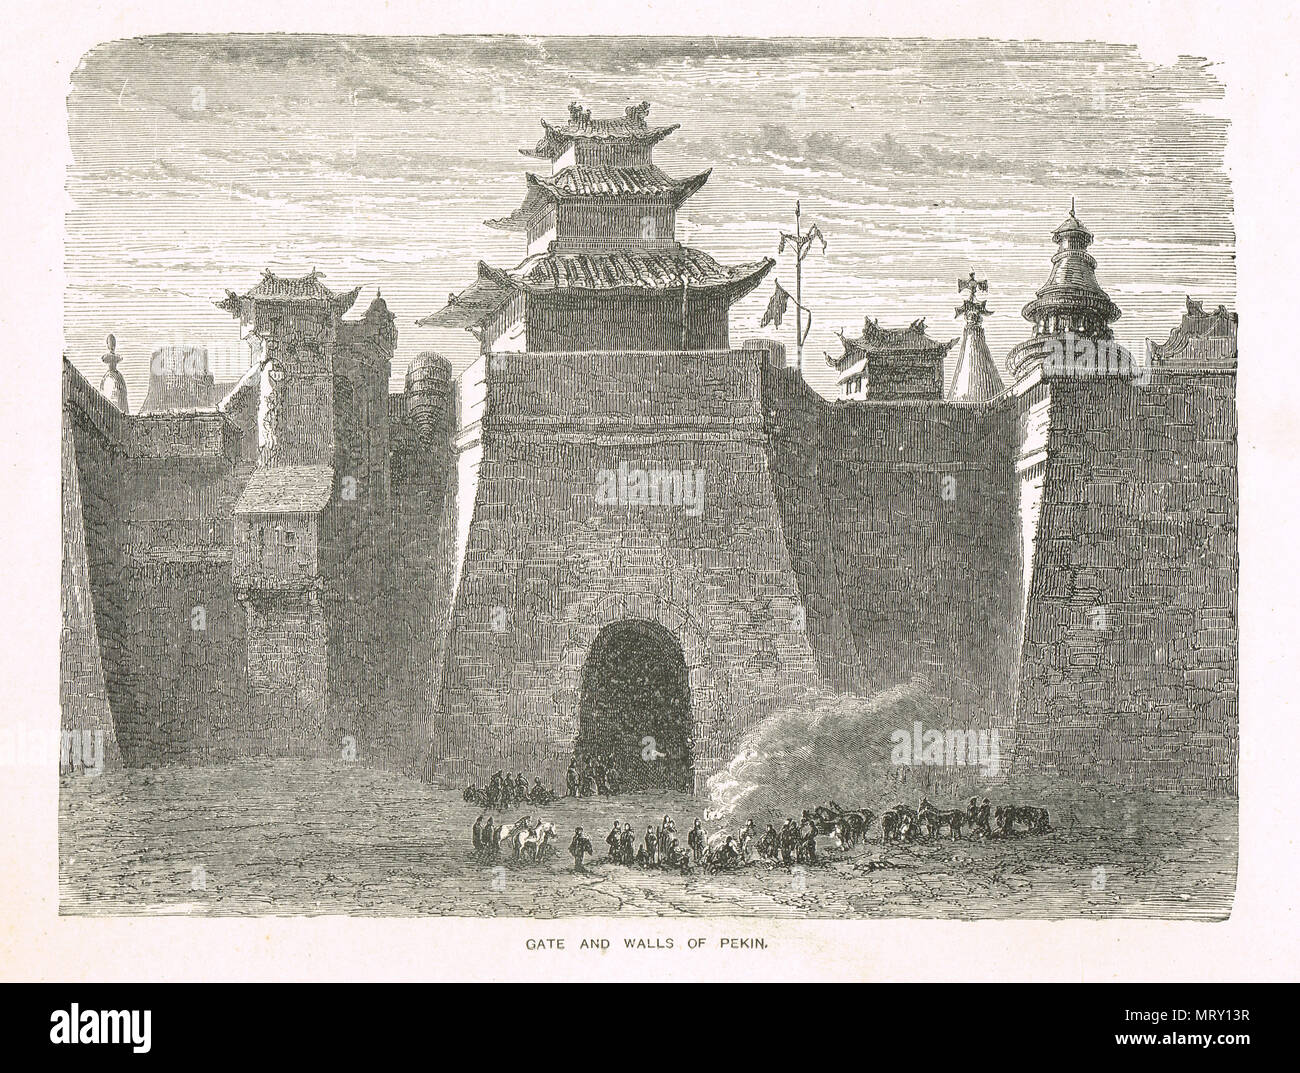 A 19th Century view of the gate and walls of Beijing, China (now dismantled) - Stock Image